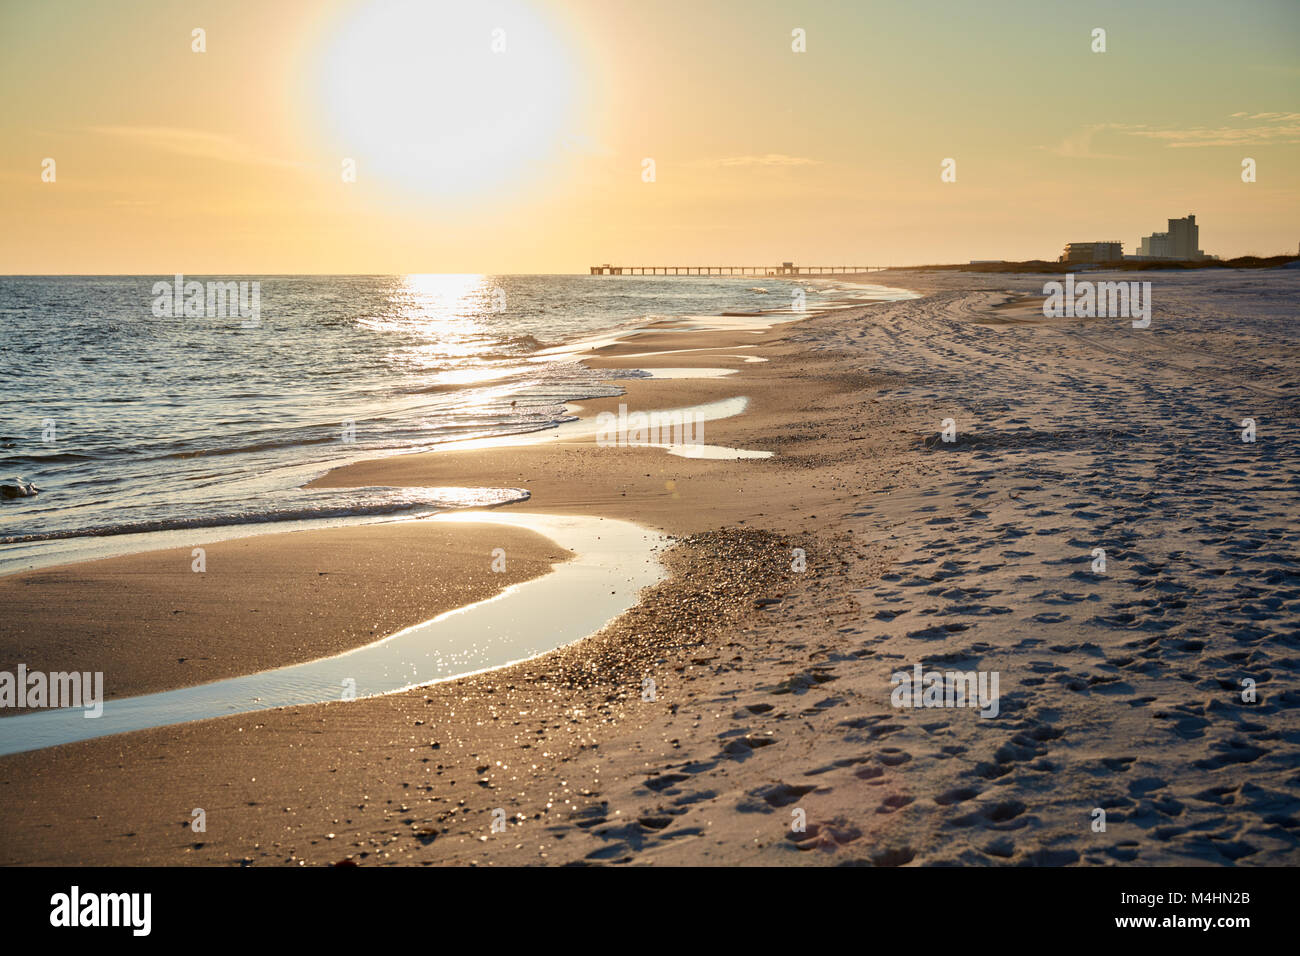 Sunset on the beach at Gulf State Park, Alabama Stock Photo